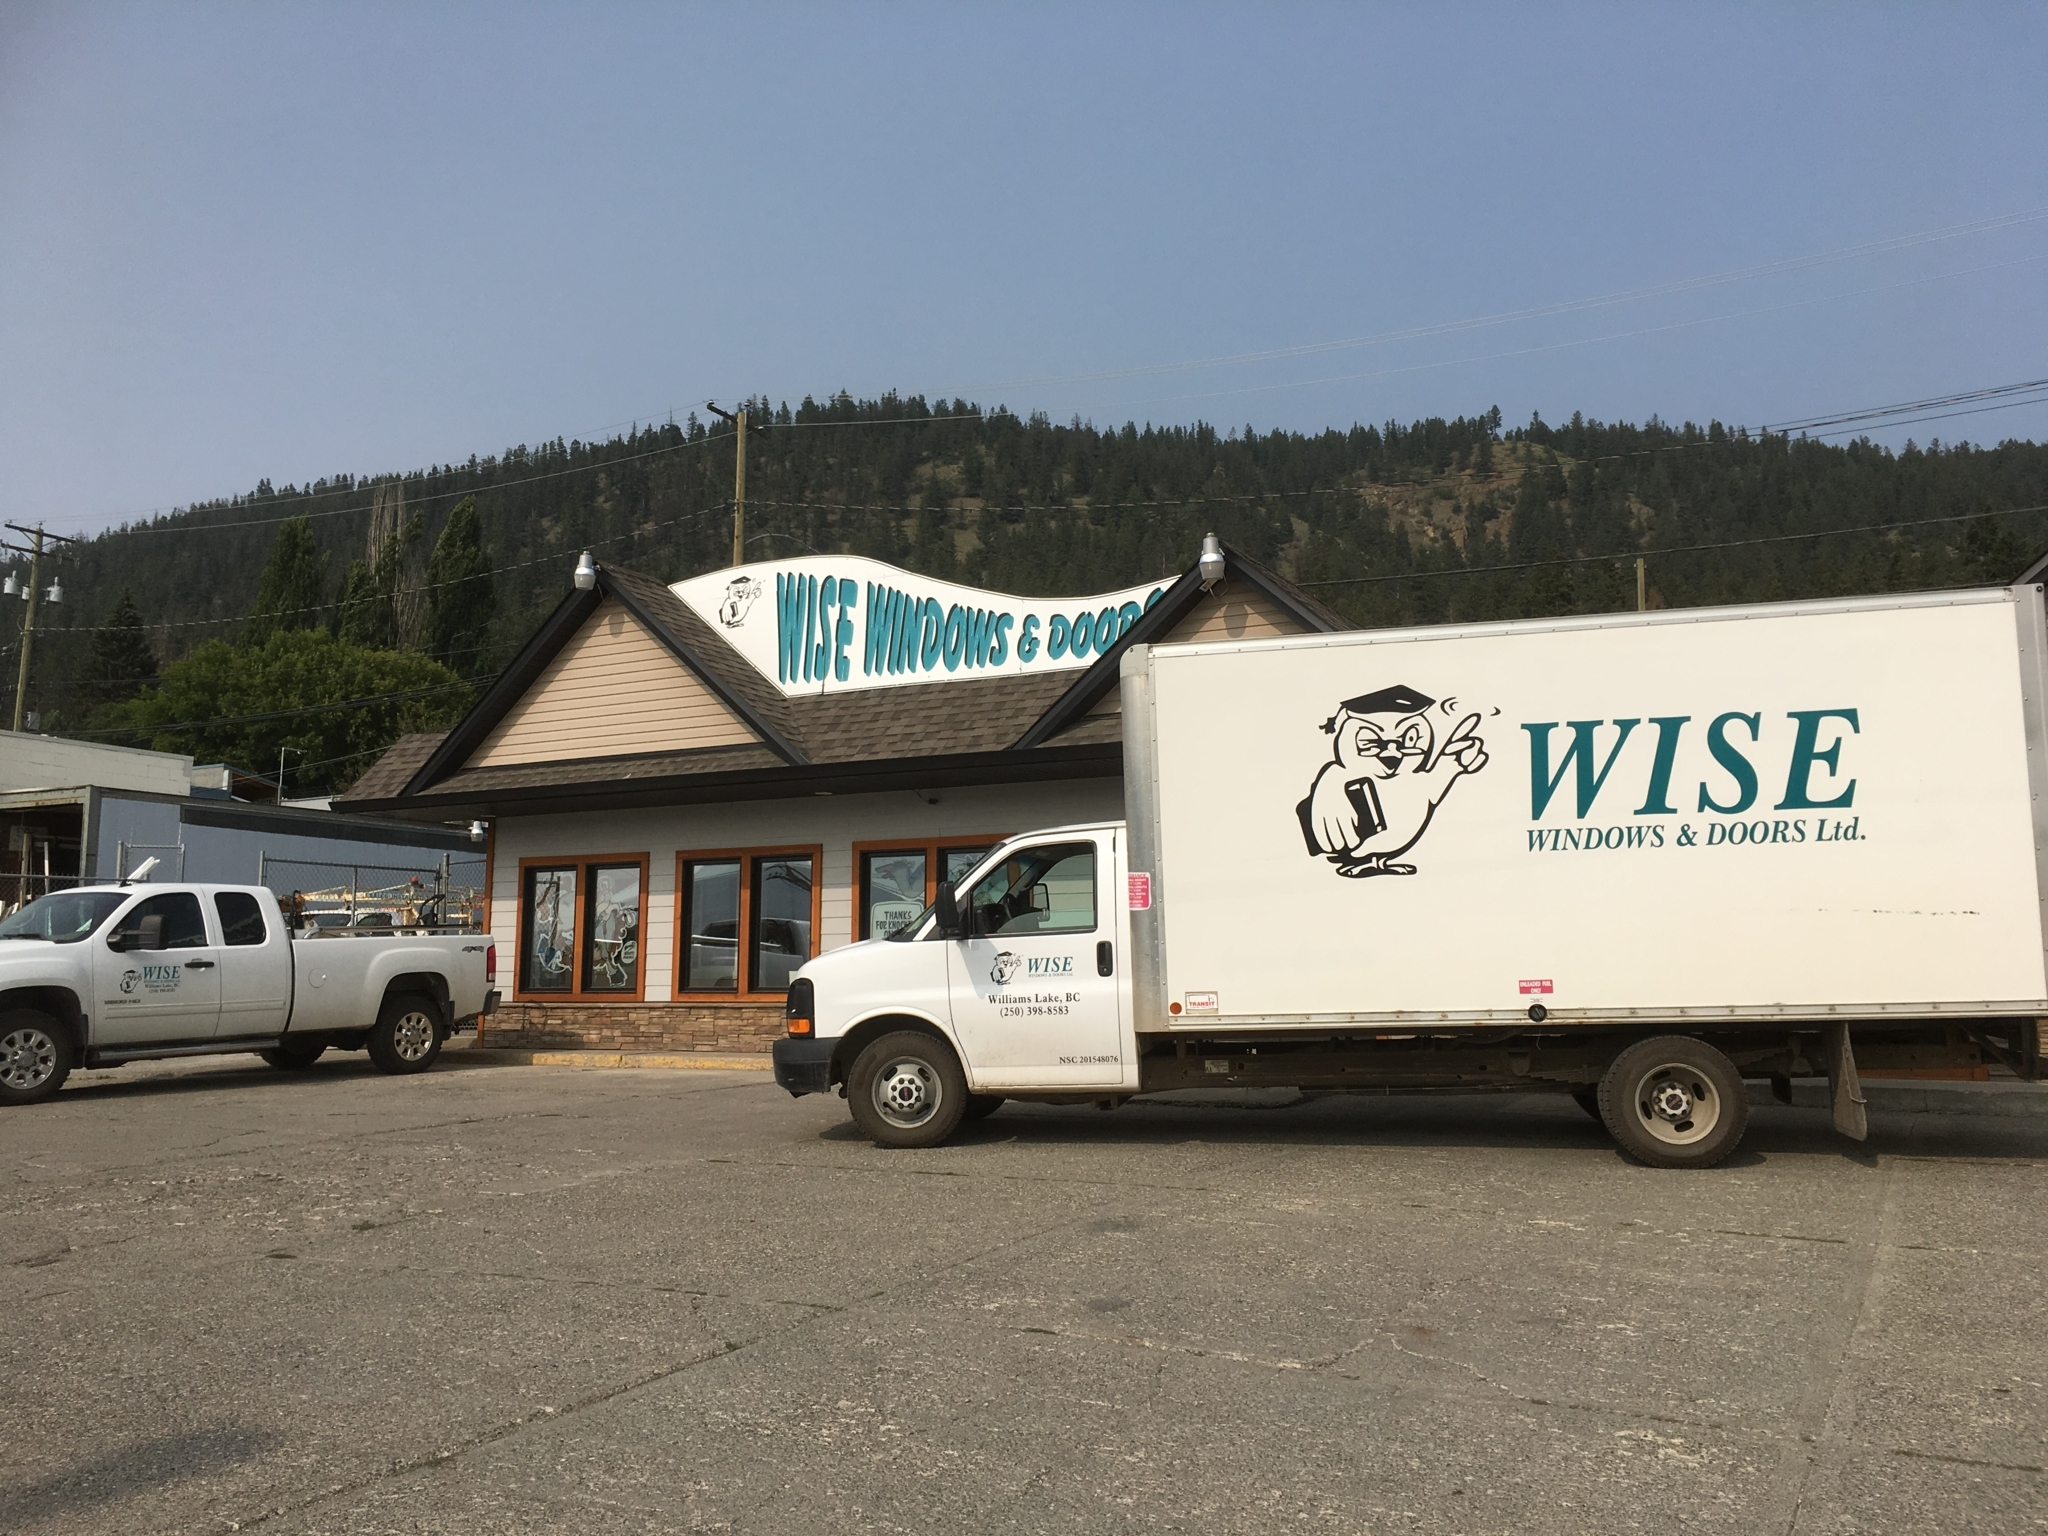 Wise Windows & Doors (Williams Lake) Ltd in Williams Lake